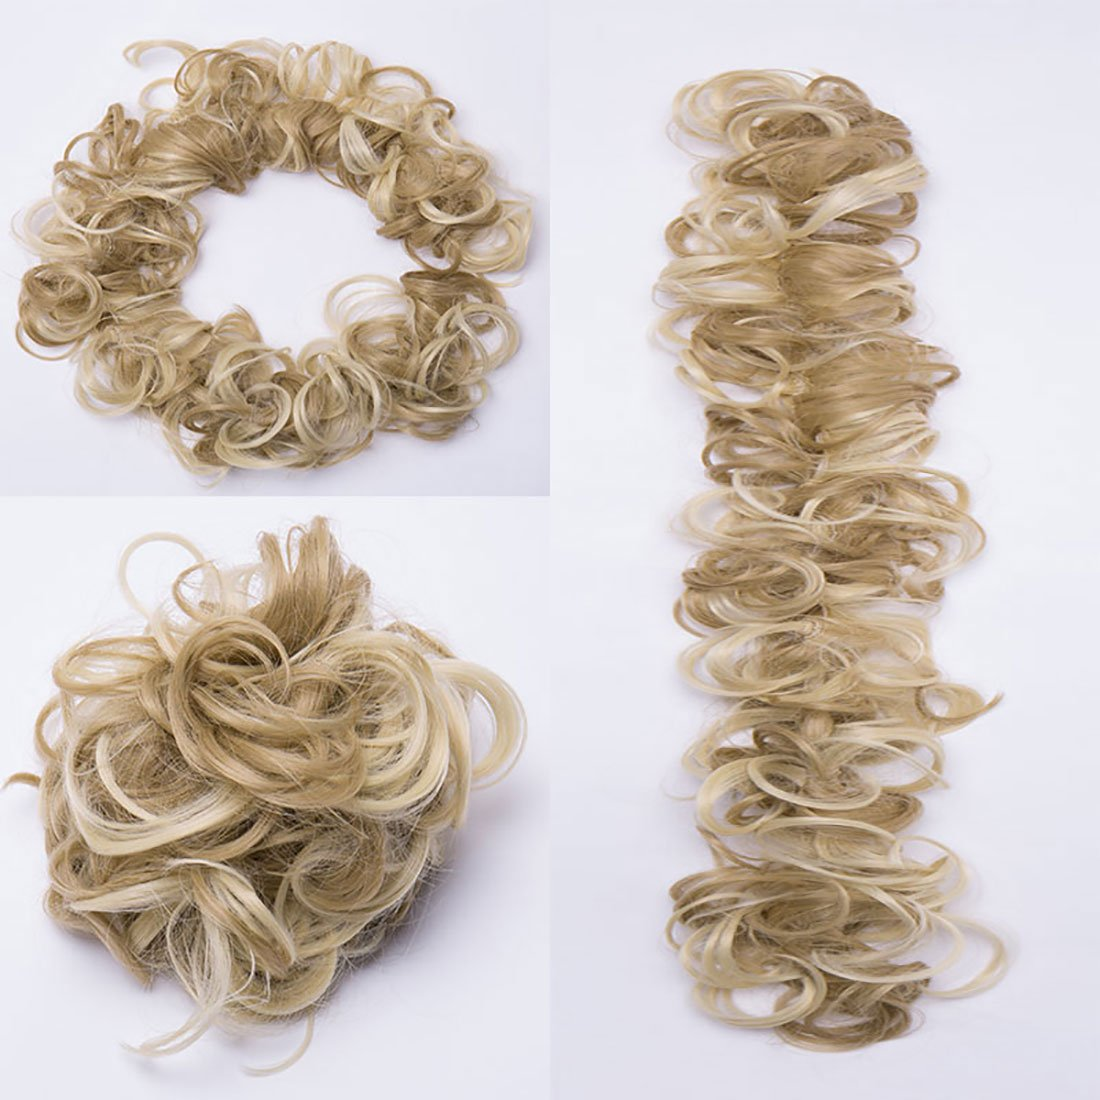 Hair Extensions Hairpiece Hair Wrap Scrunchie Scrunchy Updos VOLUMINOUS Curly Messy Bun Light Blonde mix Ash Blonde Rich Choices